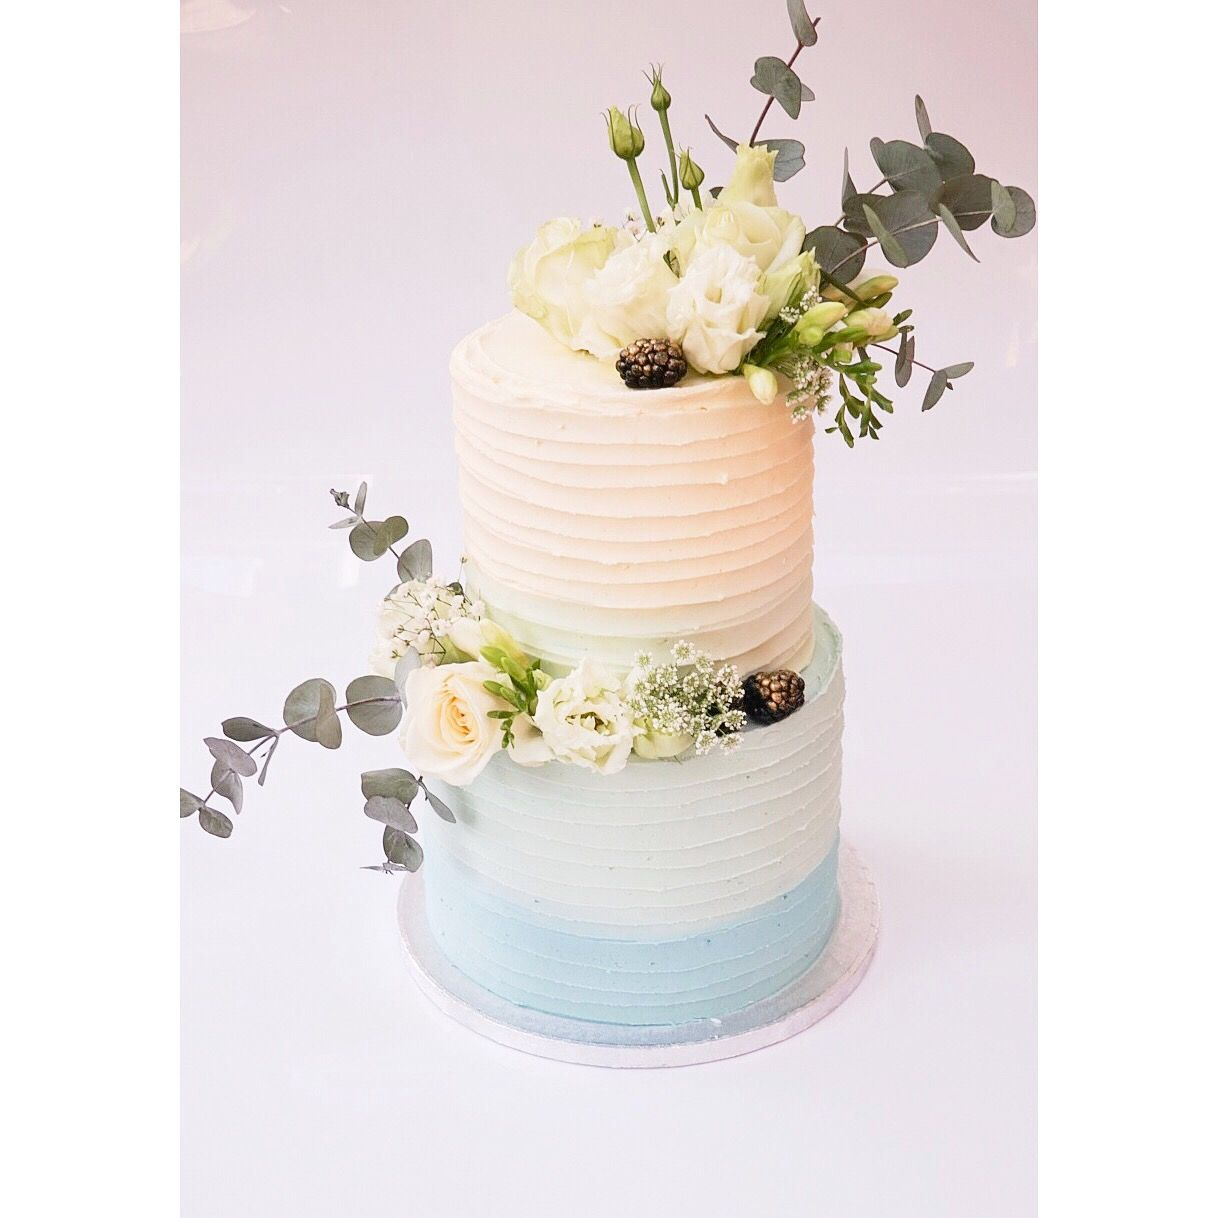 Two tier christening cake decorated with fresh flowers and